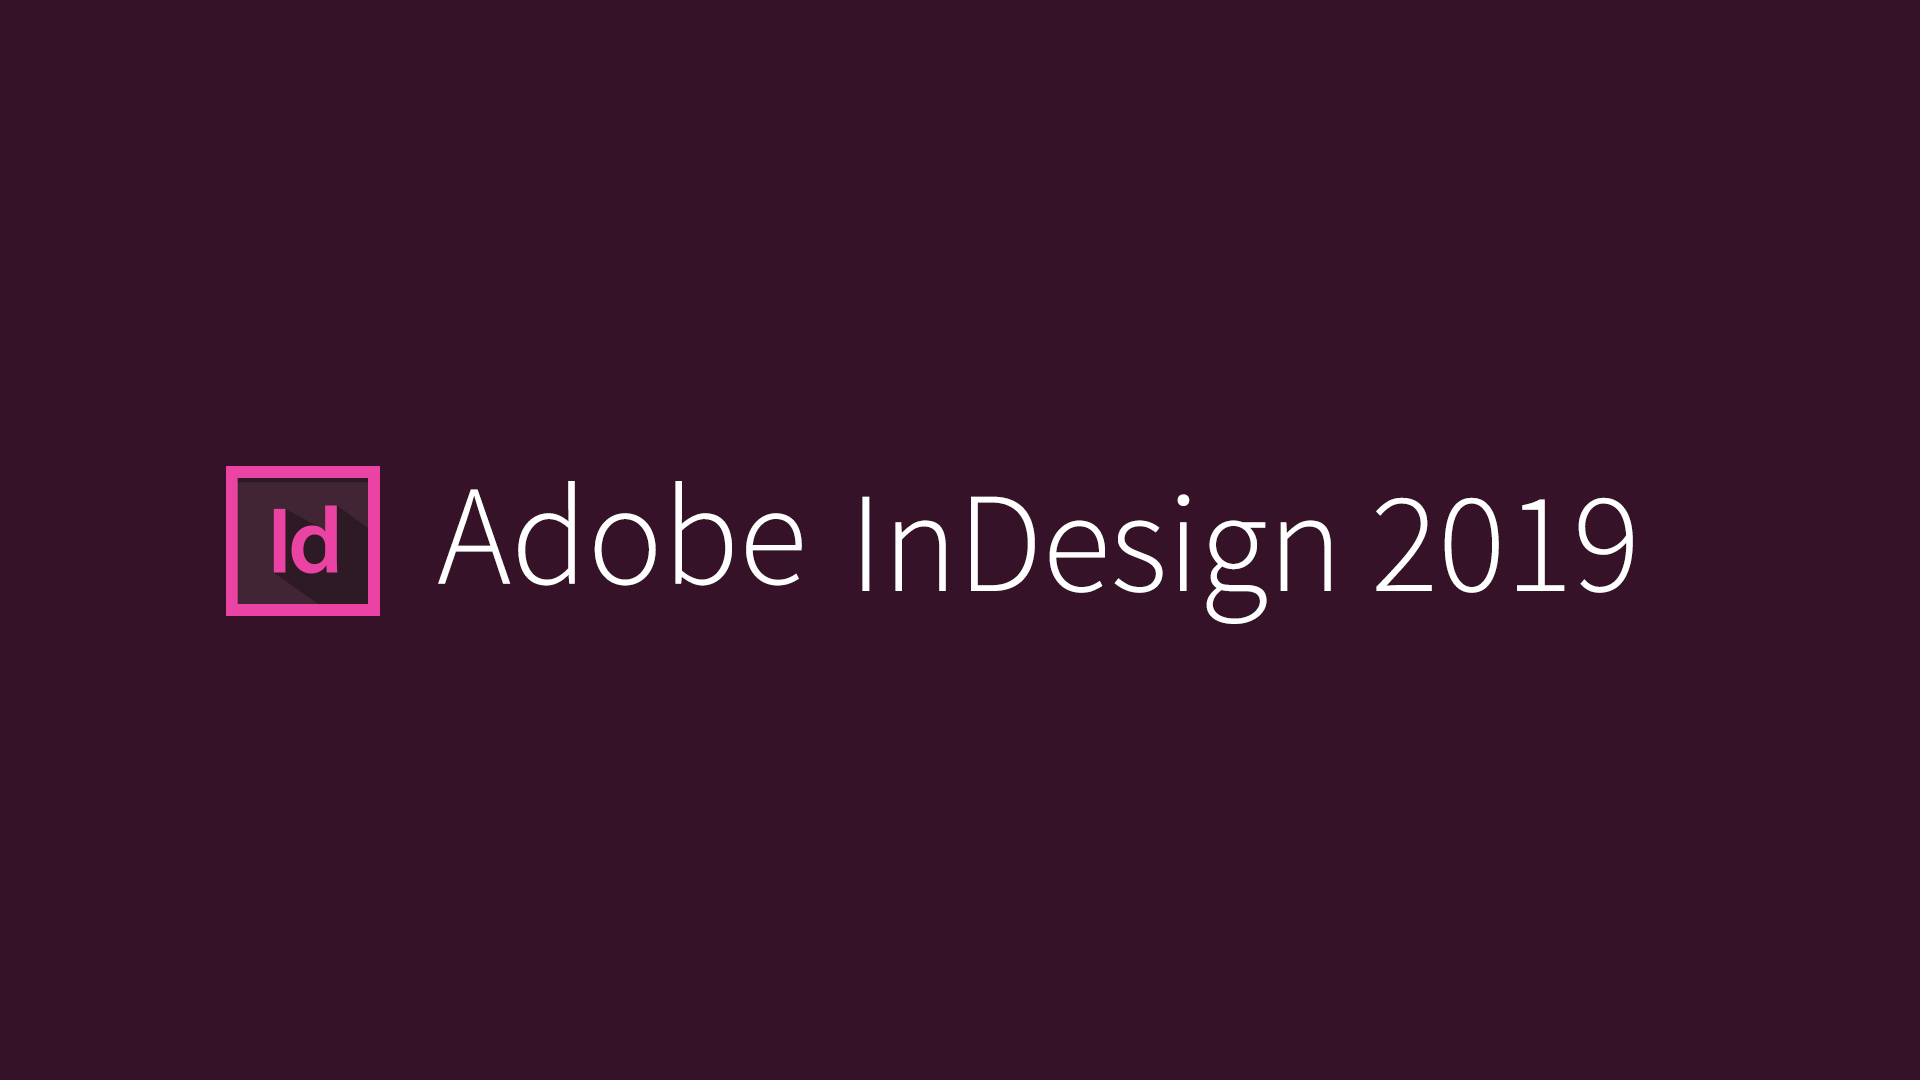 Adobe InDesign CC 2019 Free Download